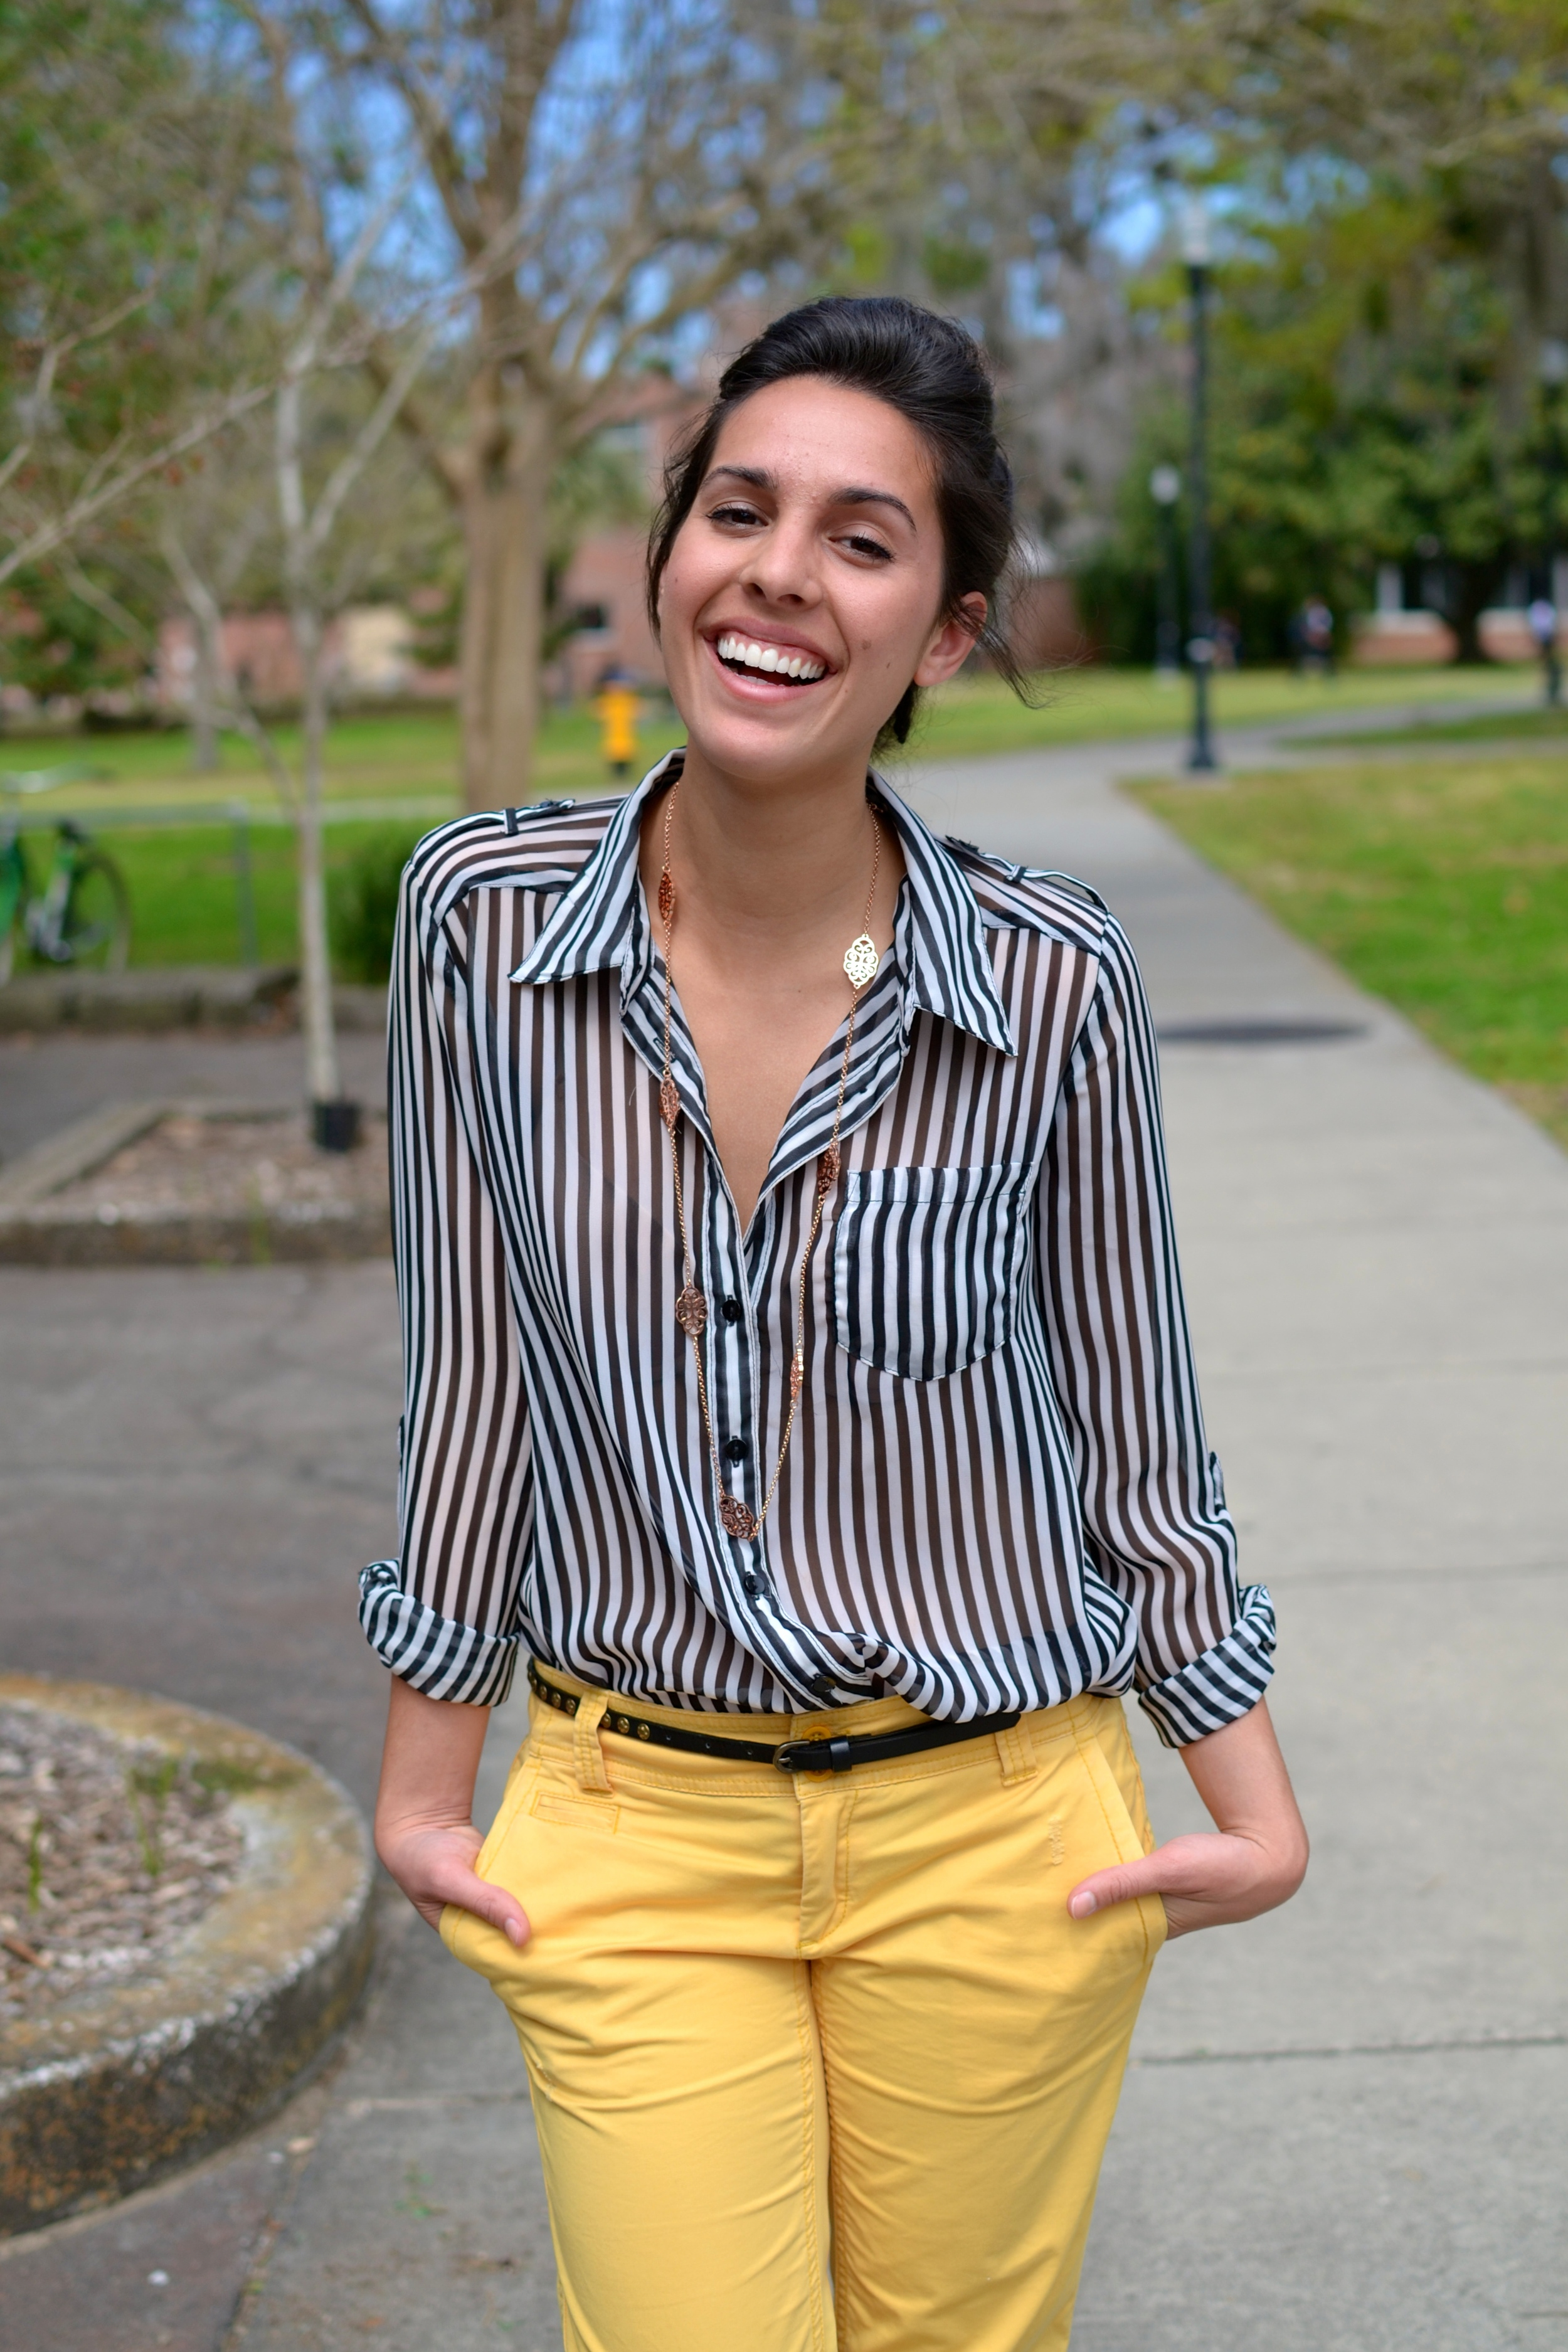 Kelsey Hernandez University of Florida Macy's striped sheer blouse and yellow khaki pants Gap. Thin studded brown belt.